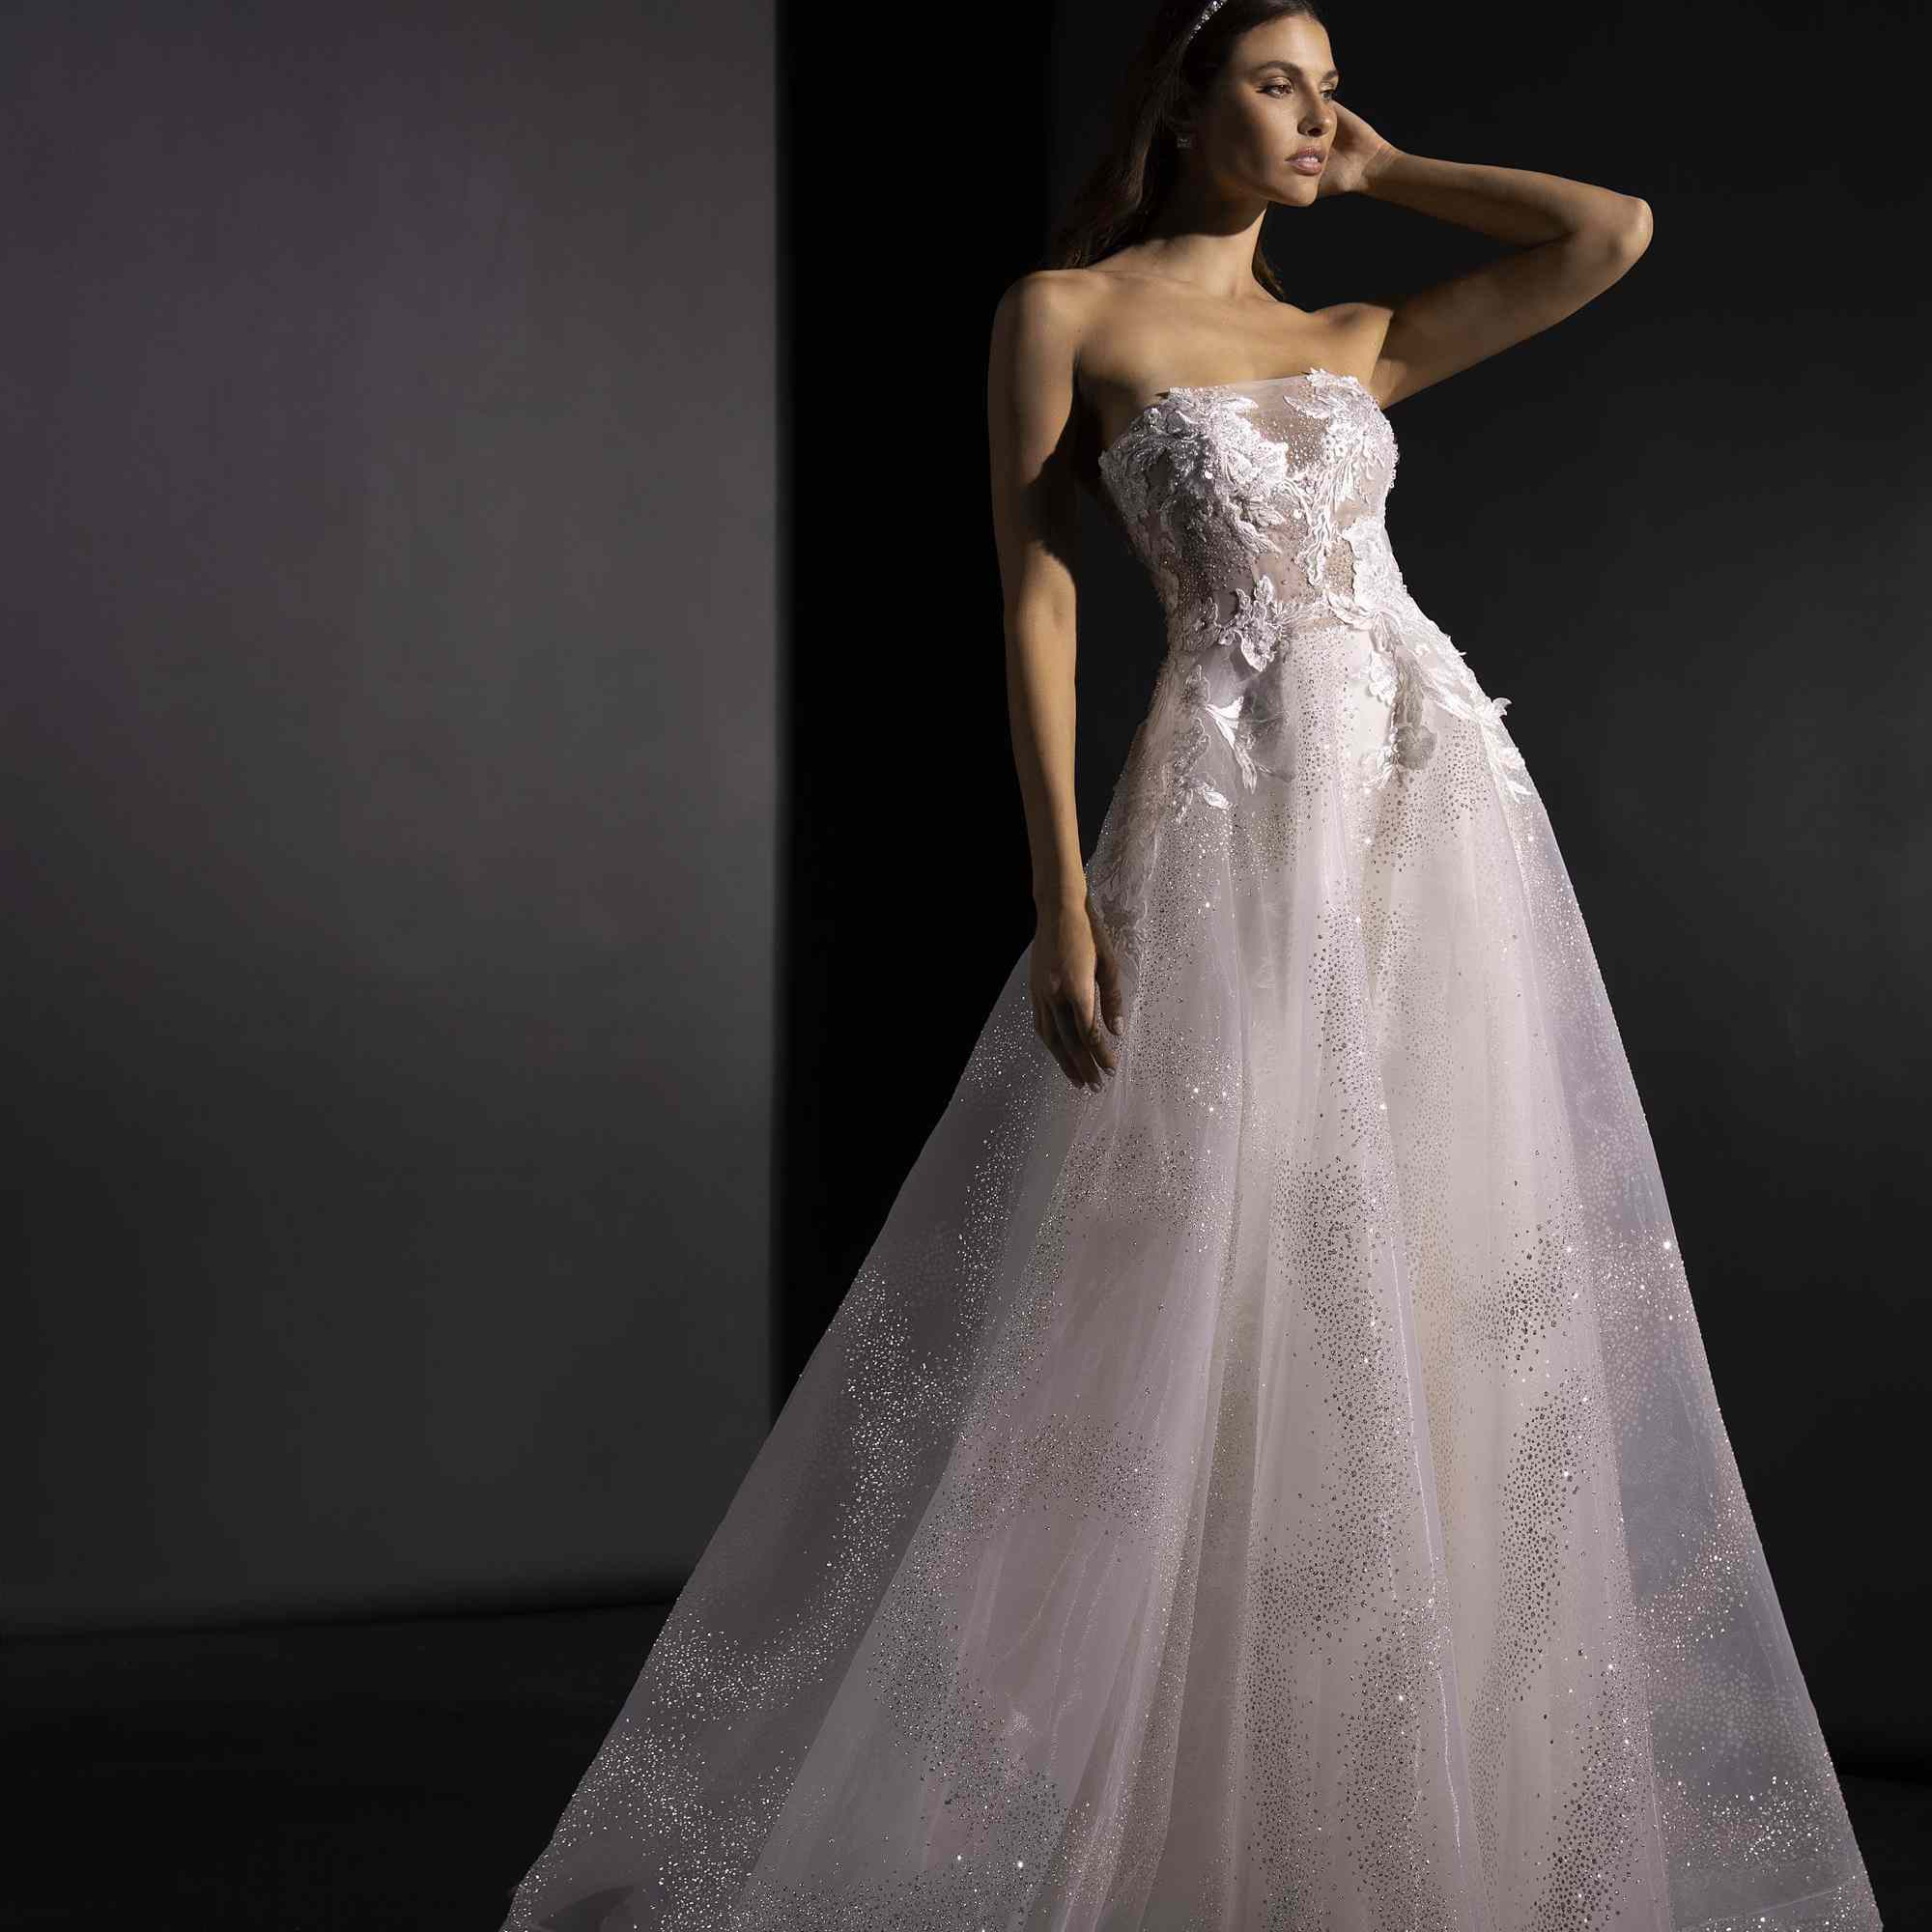 Model in strapless wispy tulle ballgown with glitter and floral appliques